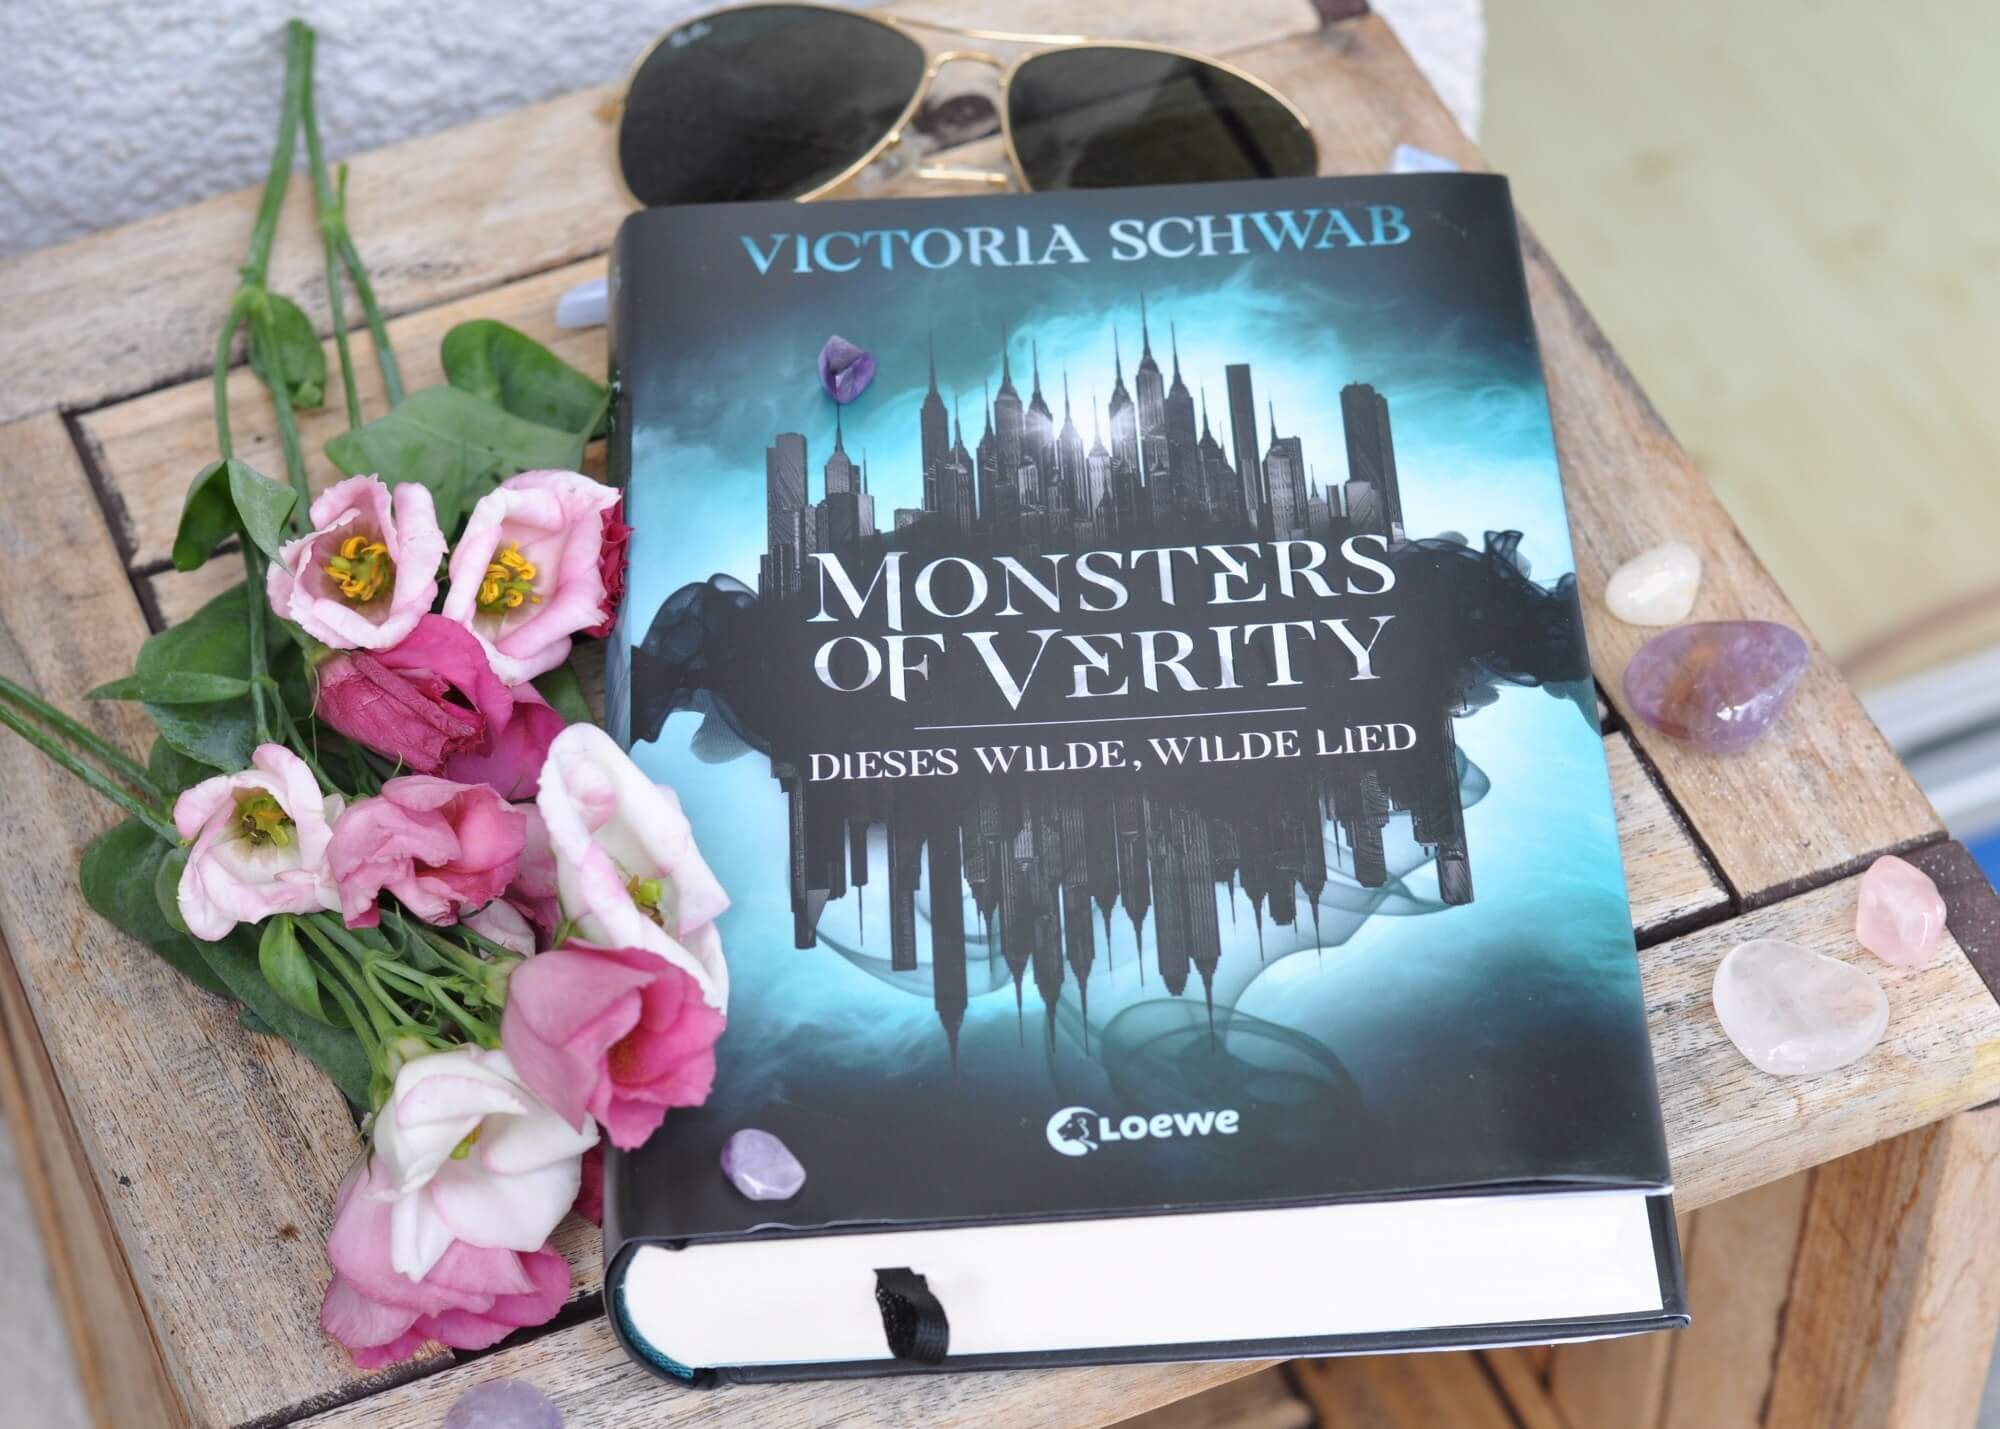 Monsters of Verity - Dieses wilde, wilde Lied Urban-Fantasy über Sünde und Moral und das Verschwimmen von Gut und Böse #fantasy #buchtipp #lesen #urban #monster